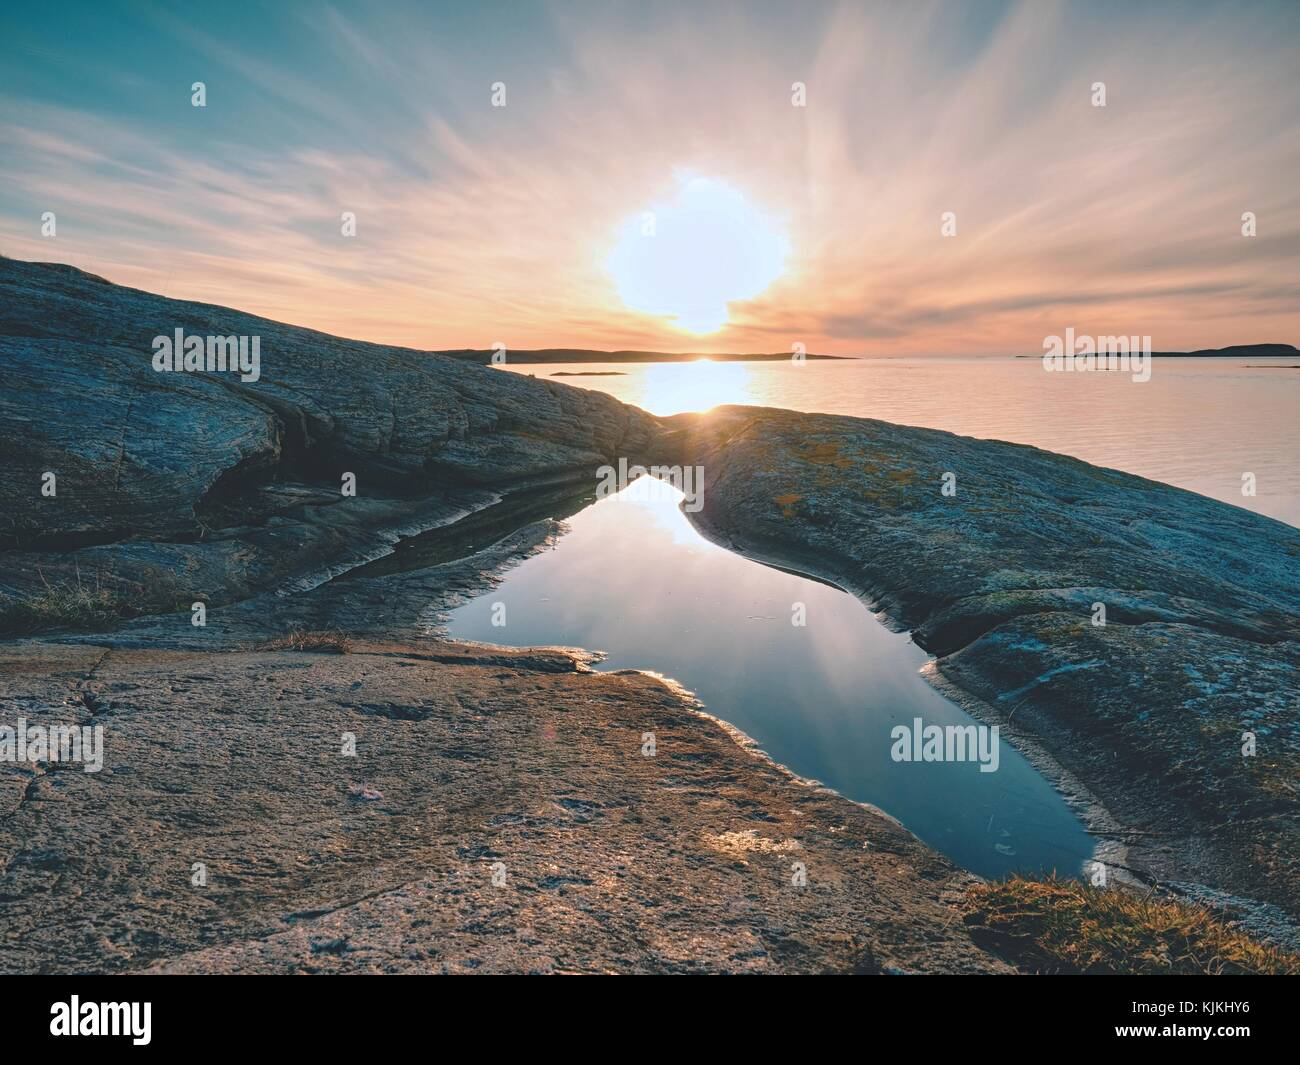 Concept of seascape sunset or sunrise background with rich reflection in water pool. The sun is hanging at horizon - Stock Image